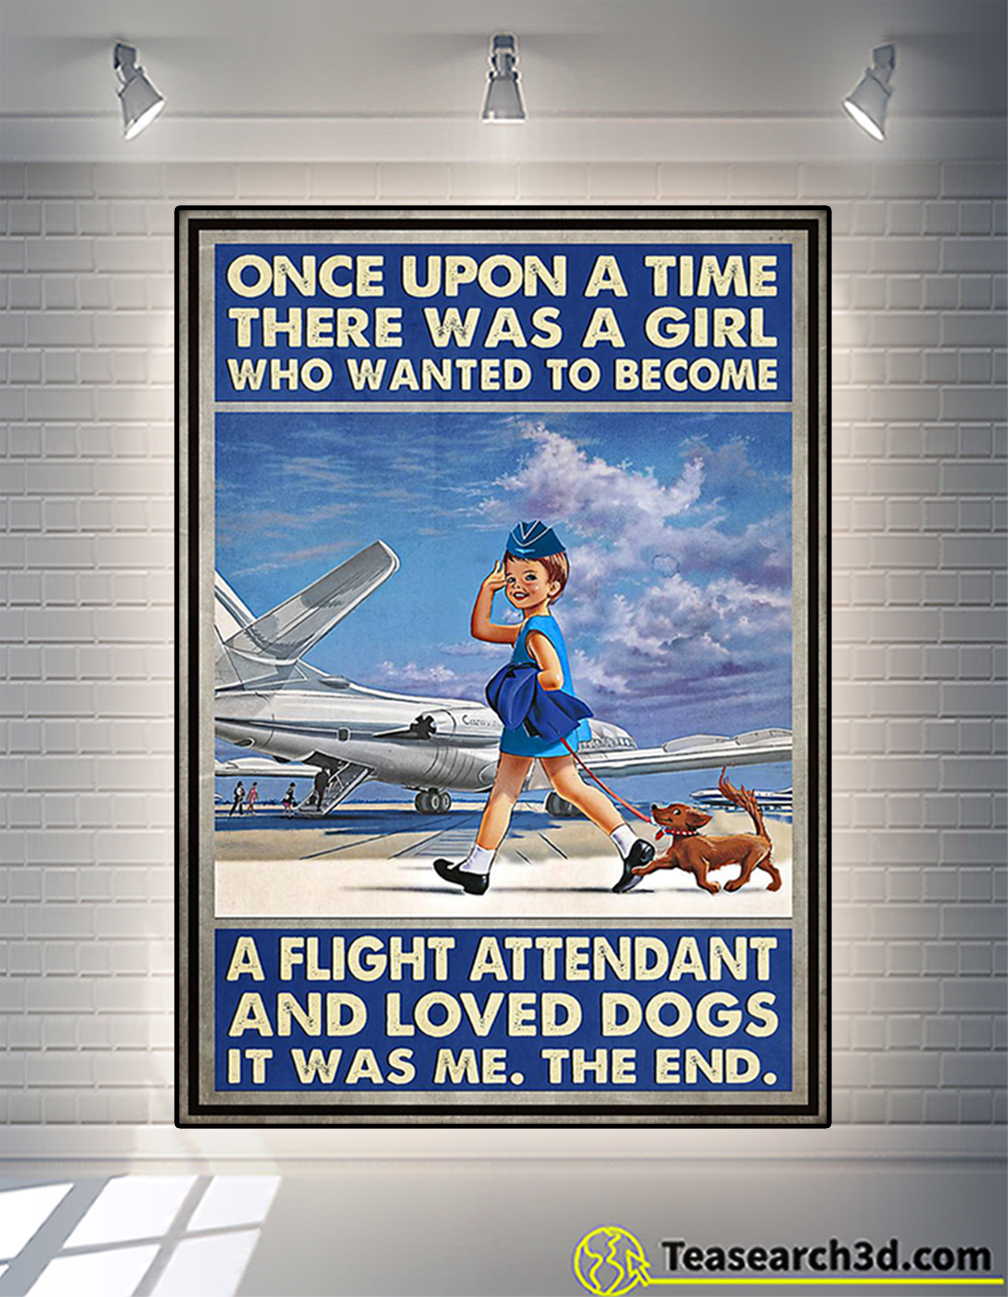 Once upon a time there was a girl who wanted to become a flight attendant and loved dogs poster